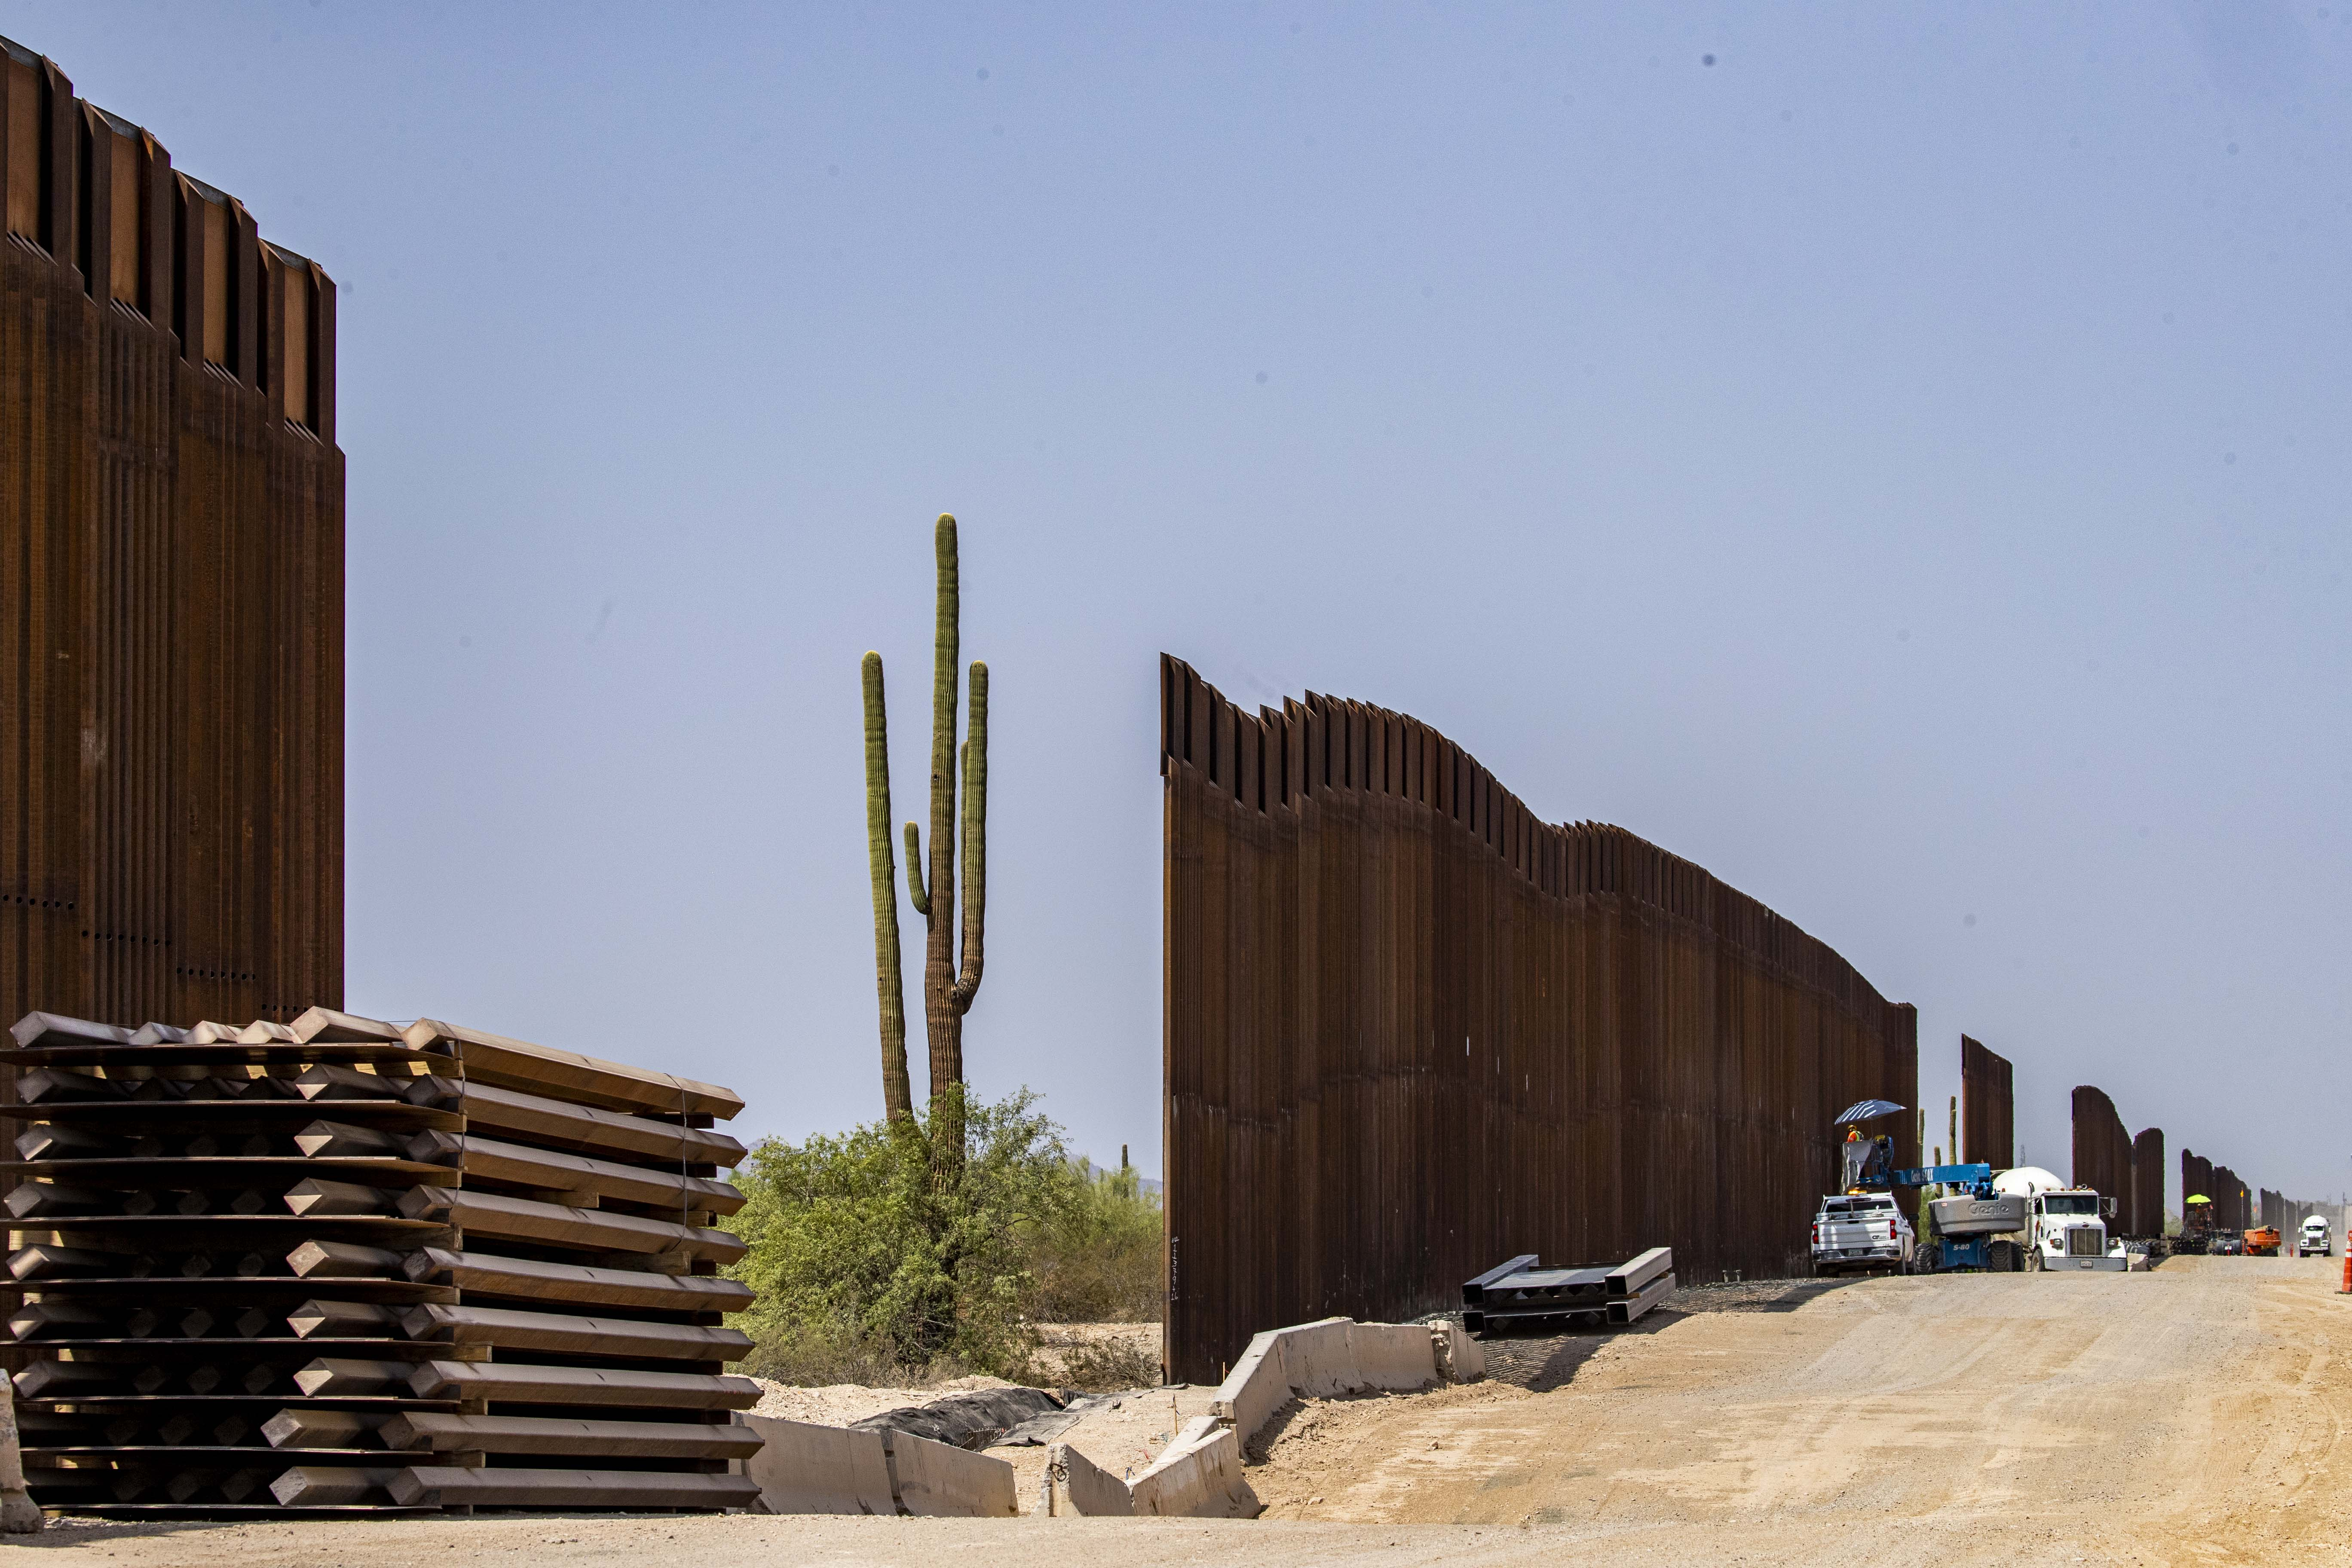 Construction workers installing 30-foot steel bollards at Organ Pipe Cactus National Monument in southern Arizona are accused of dumping metal and other leftover construction materials across the border into Mexico, where residents of the border city of Sonoyta, Sonora gather those materials and sell them for scraps to make ends meet.